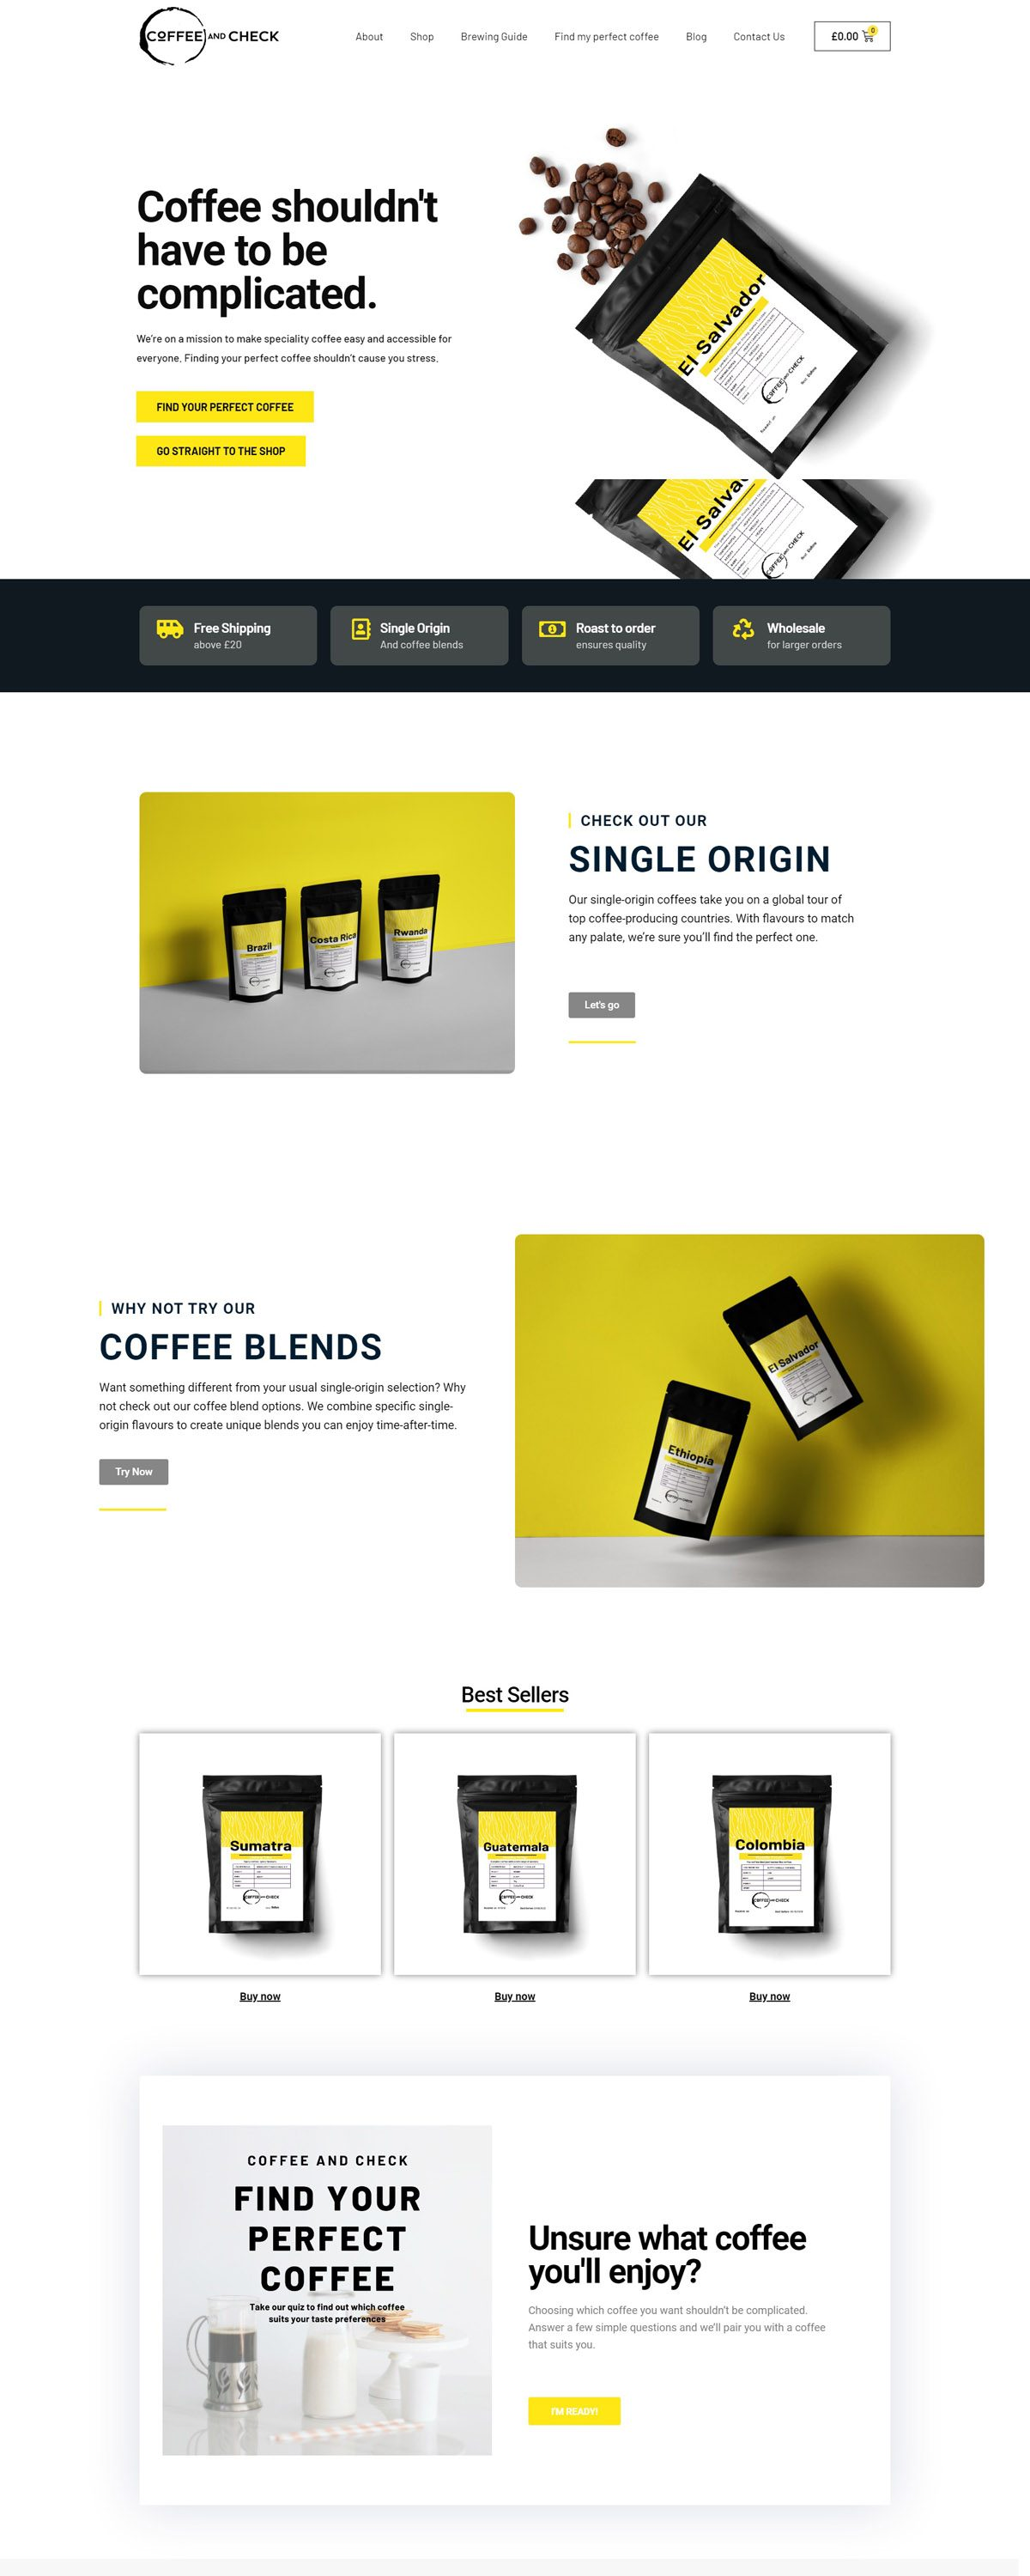 eCommerce website: Coffee and check